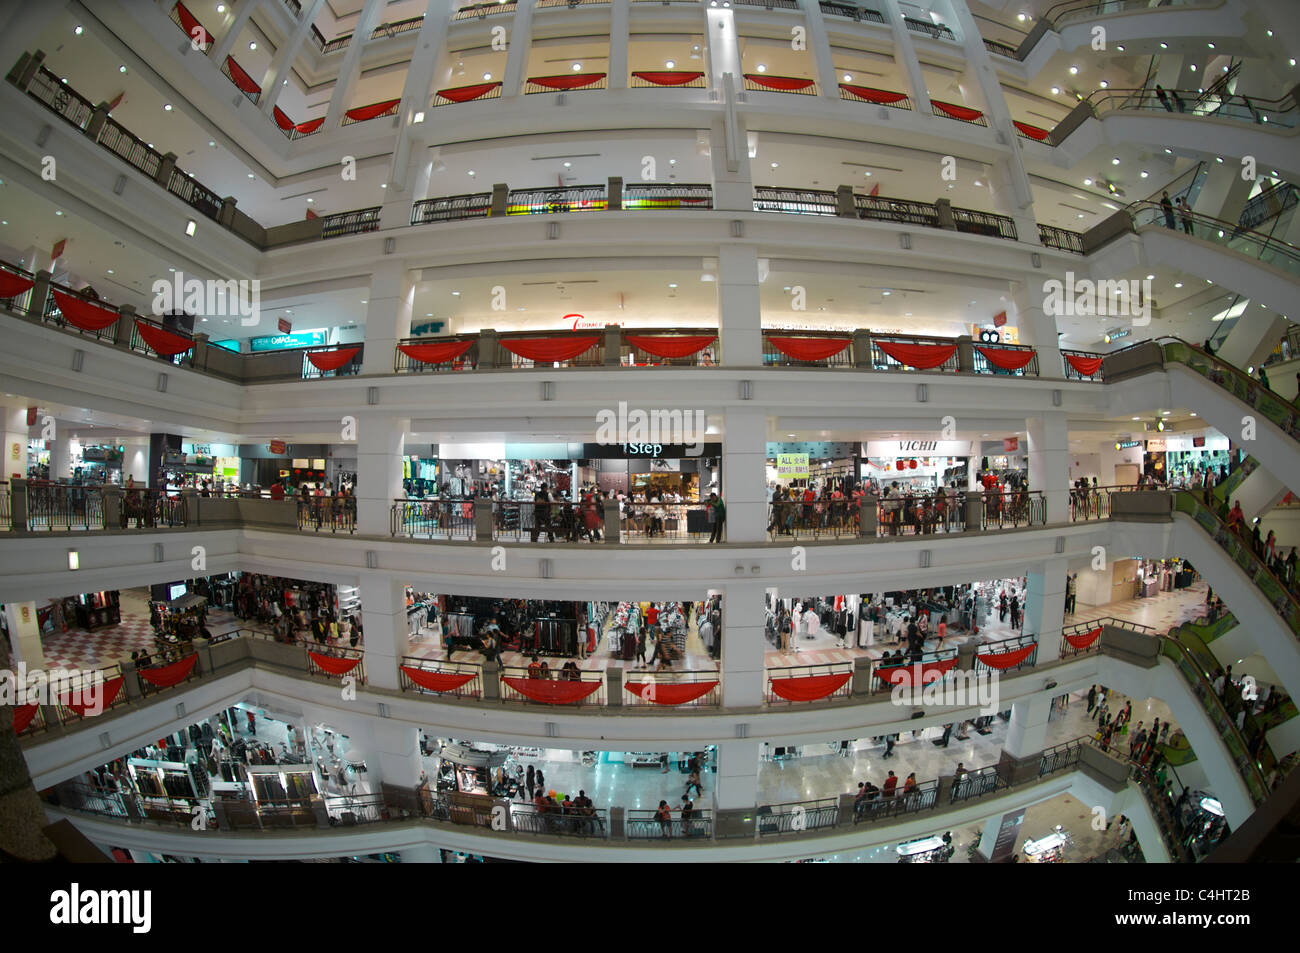 Times Square Shopping Mall KL - Stock Image